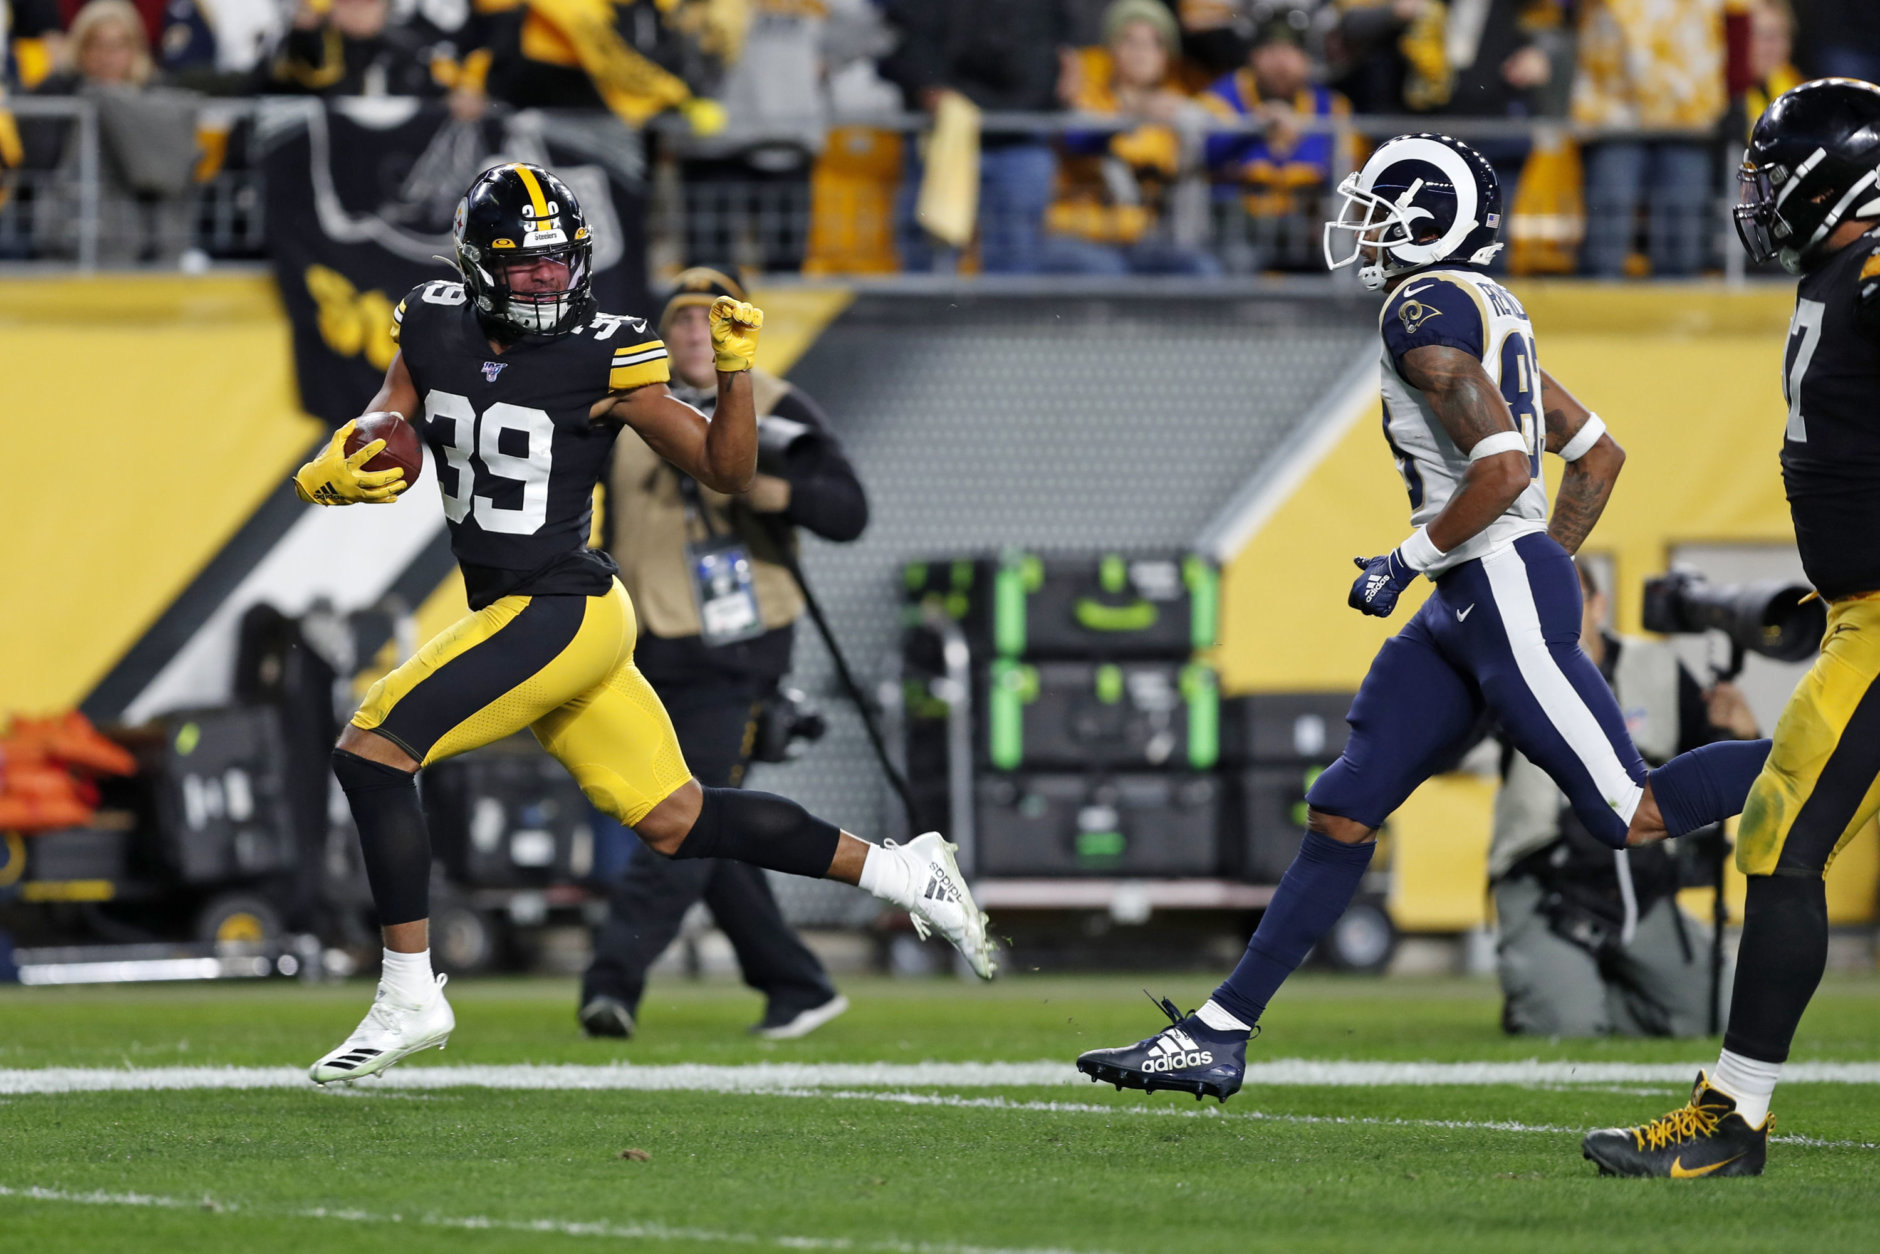 <p><em><strong>Rams 12</strong></em><br /> <em><strong>Steelers 17</strong></em></p> <p>Minkah Fitzpatrick is the first Steeler in 35 years to score a defensive TD in back-to-back games and has five picks in only seven games in Black and Gold. If Pittsburgh makes the playoffs, he has to be in the mix for Defensive Player of the Year.</p> <p>And reigning DPOY Aaron Donald got a safety in his Steel City homecoming, but his Rams look lost in a division (and conference) where the margin for error won&#8217;t allow them to sneak into the playoffs without a dramatic turnaround. Jared Goff is looking more like Joe Flacco every day.</p>